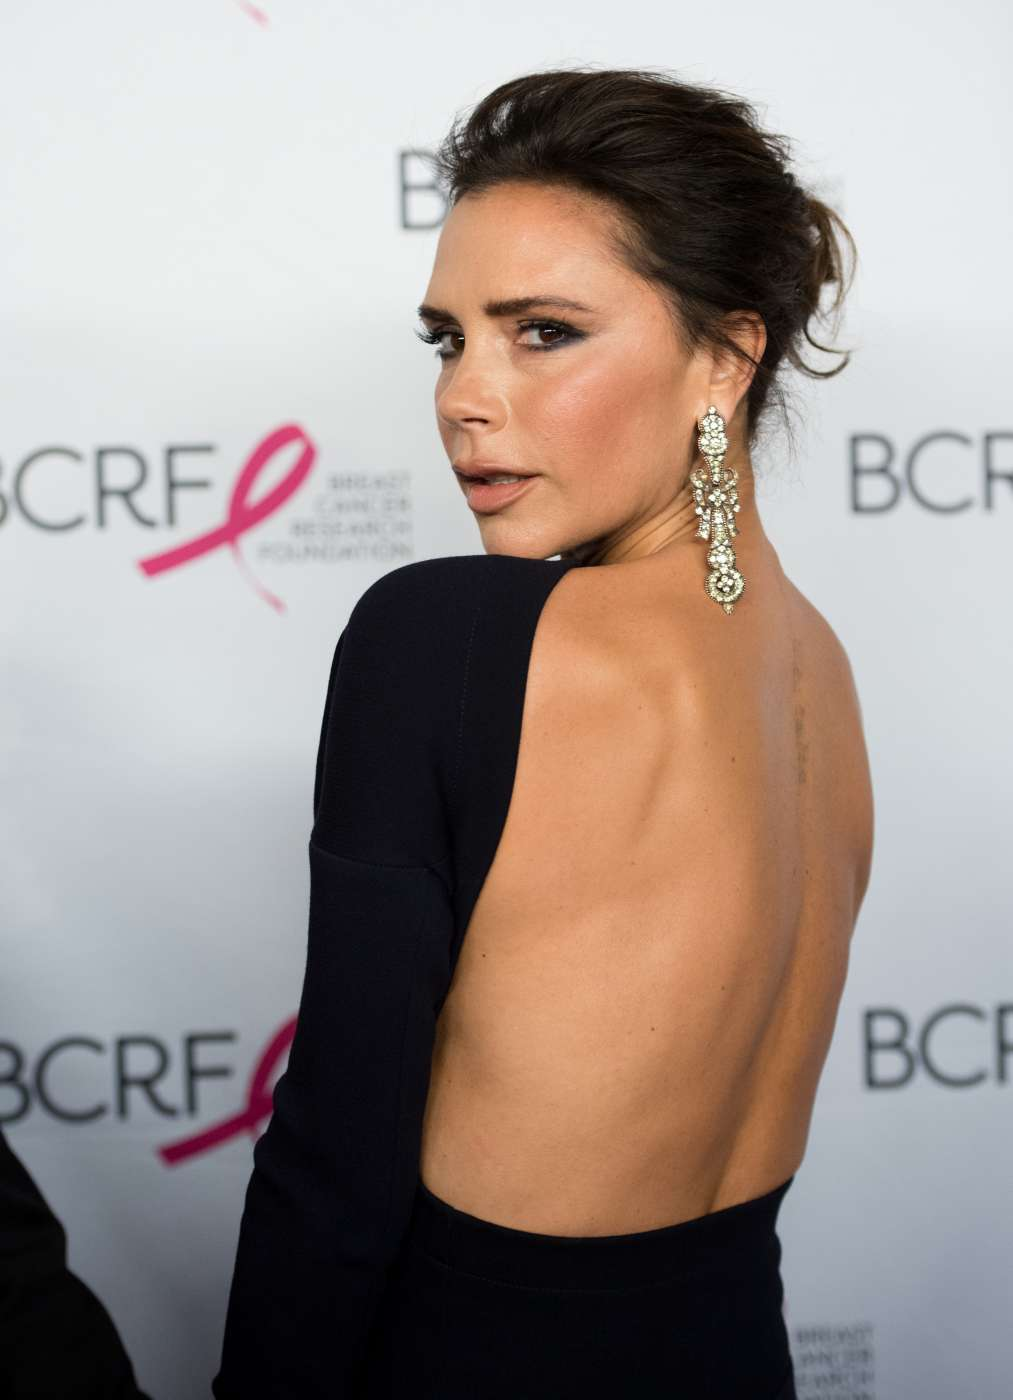 Victoria Beckham Sparks Divorce Rumours After Removing Tattoo Dedicated To David Nova 969